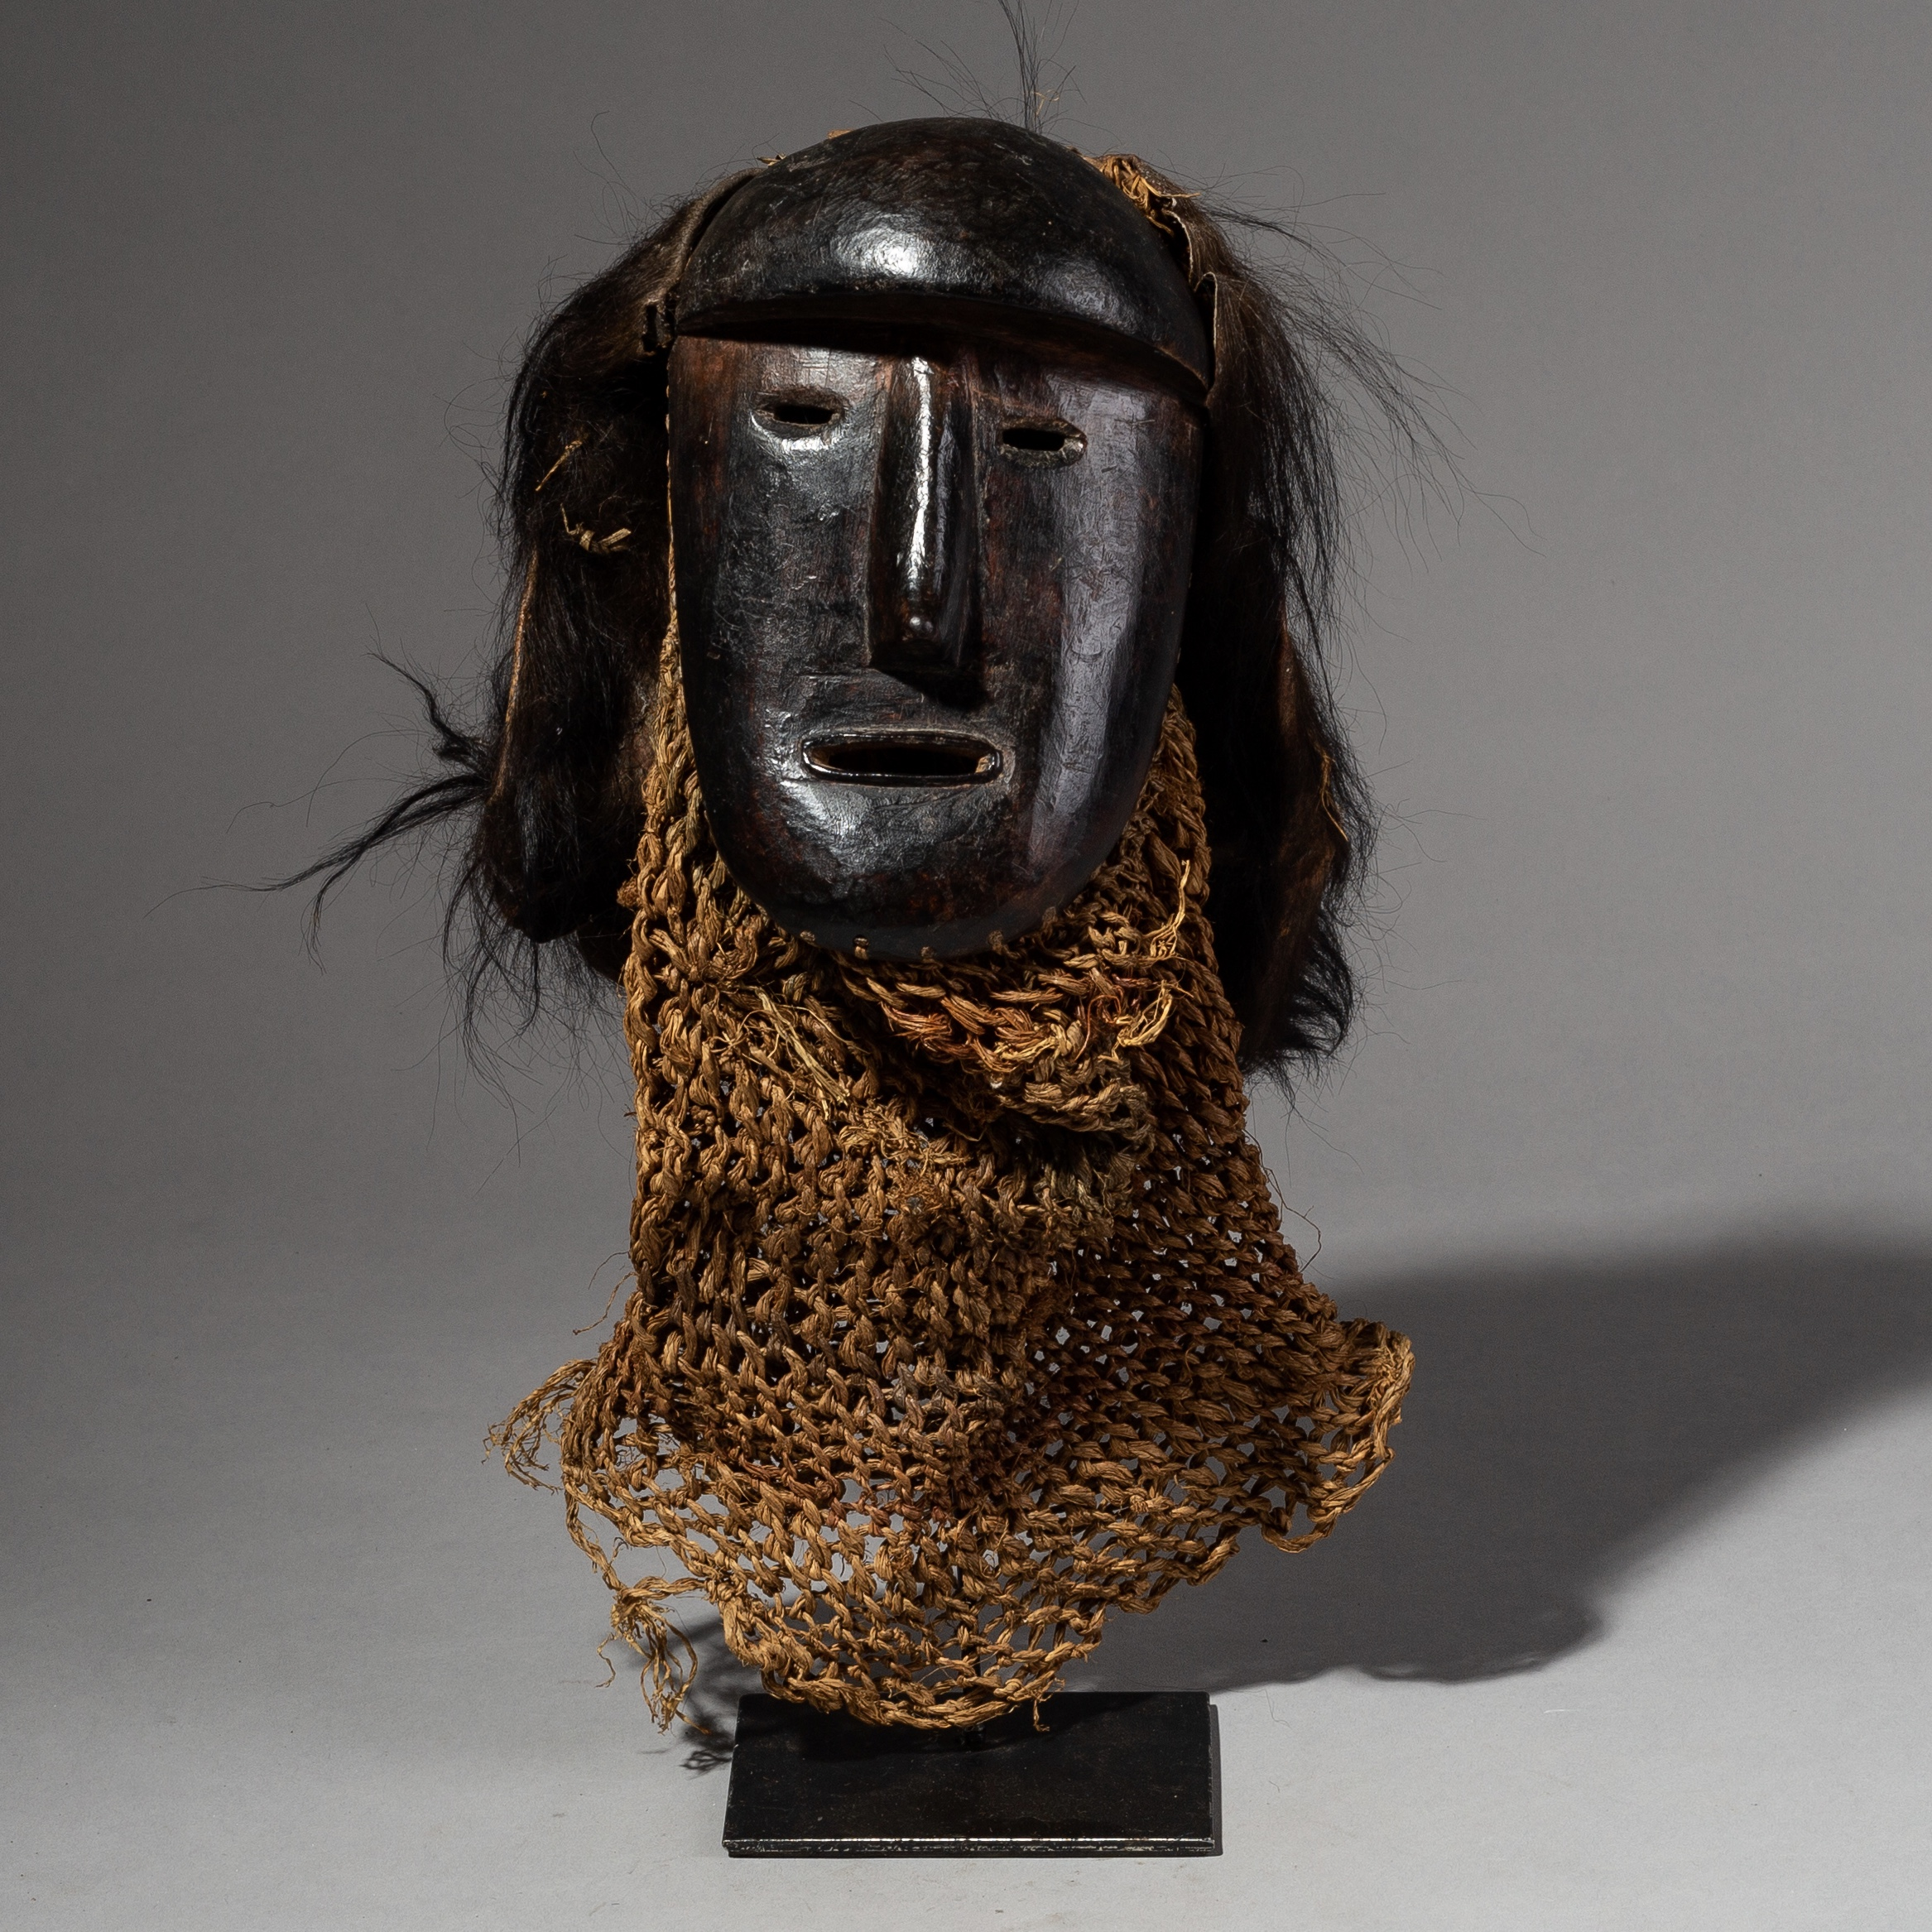 AN IMPRESSIVE OLD MASK FROM THE CONGO EX UK COLLECTION ( No 2054 )